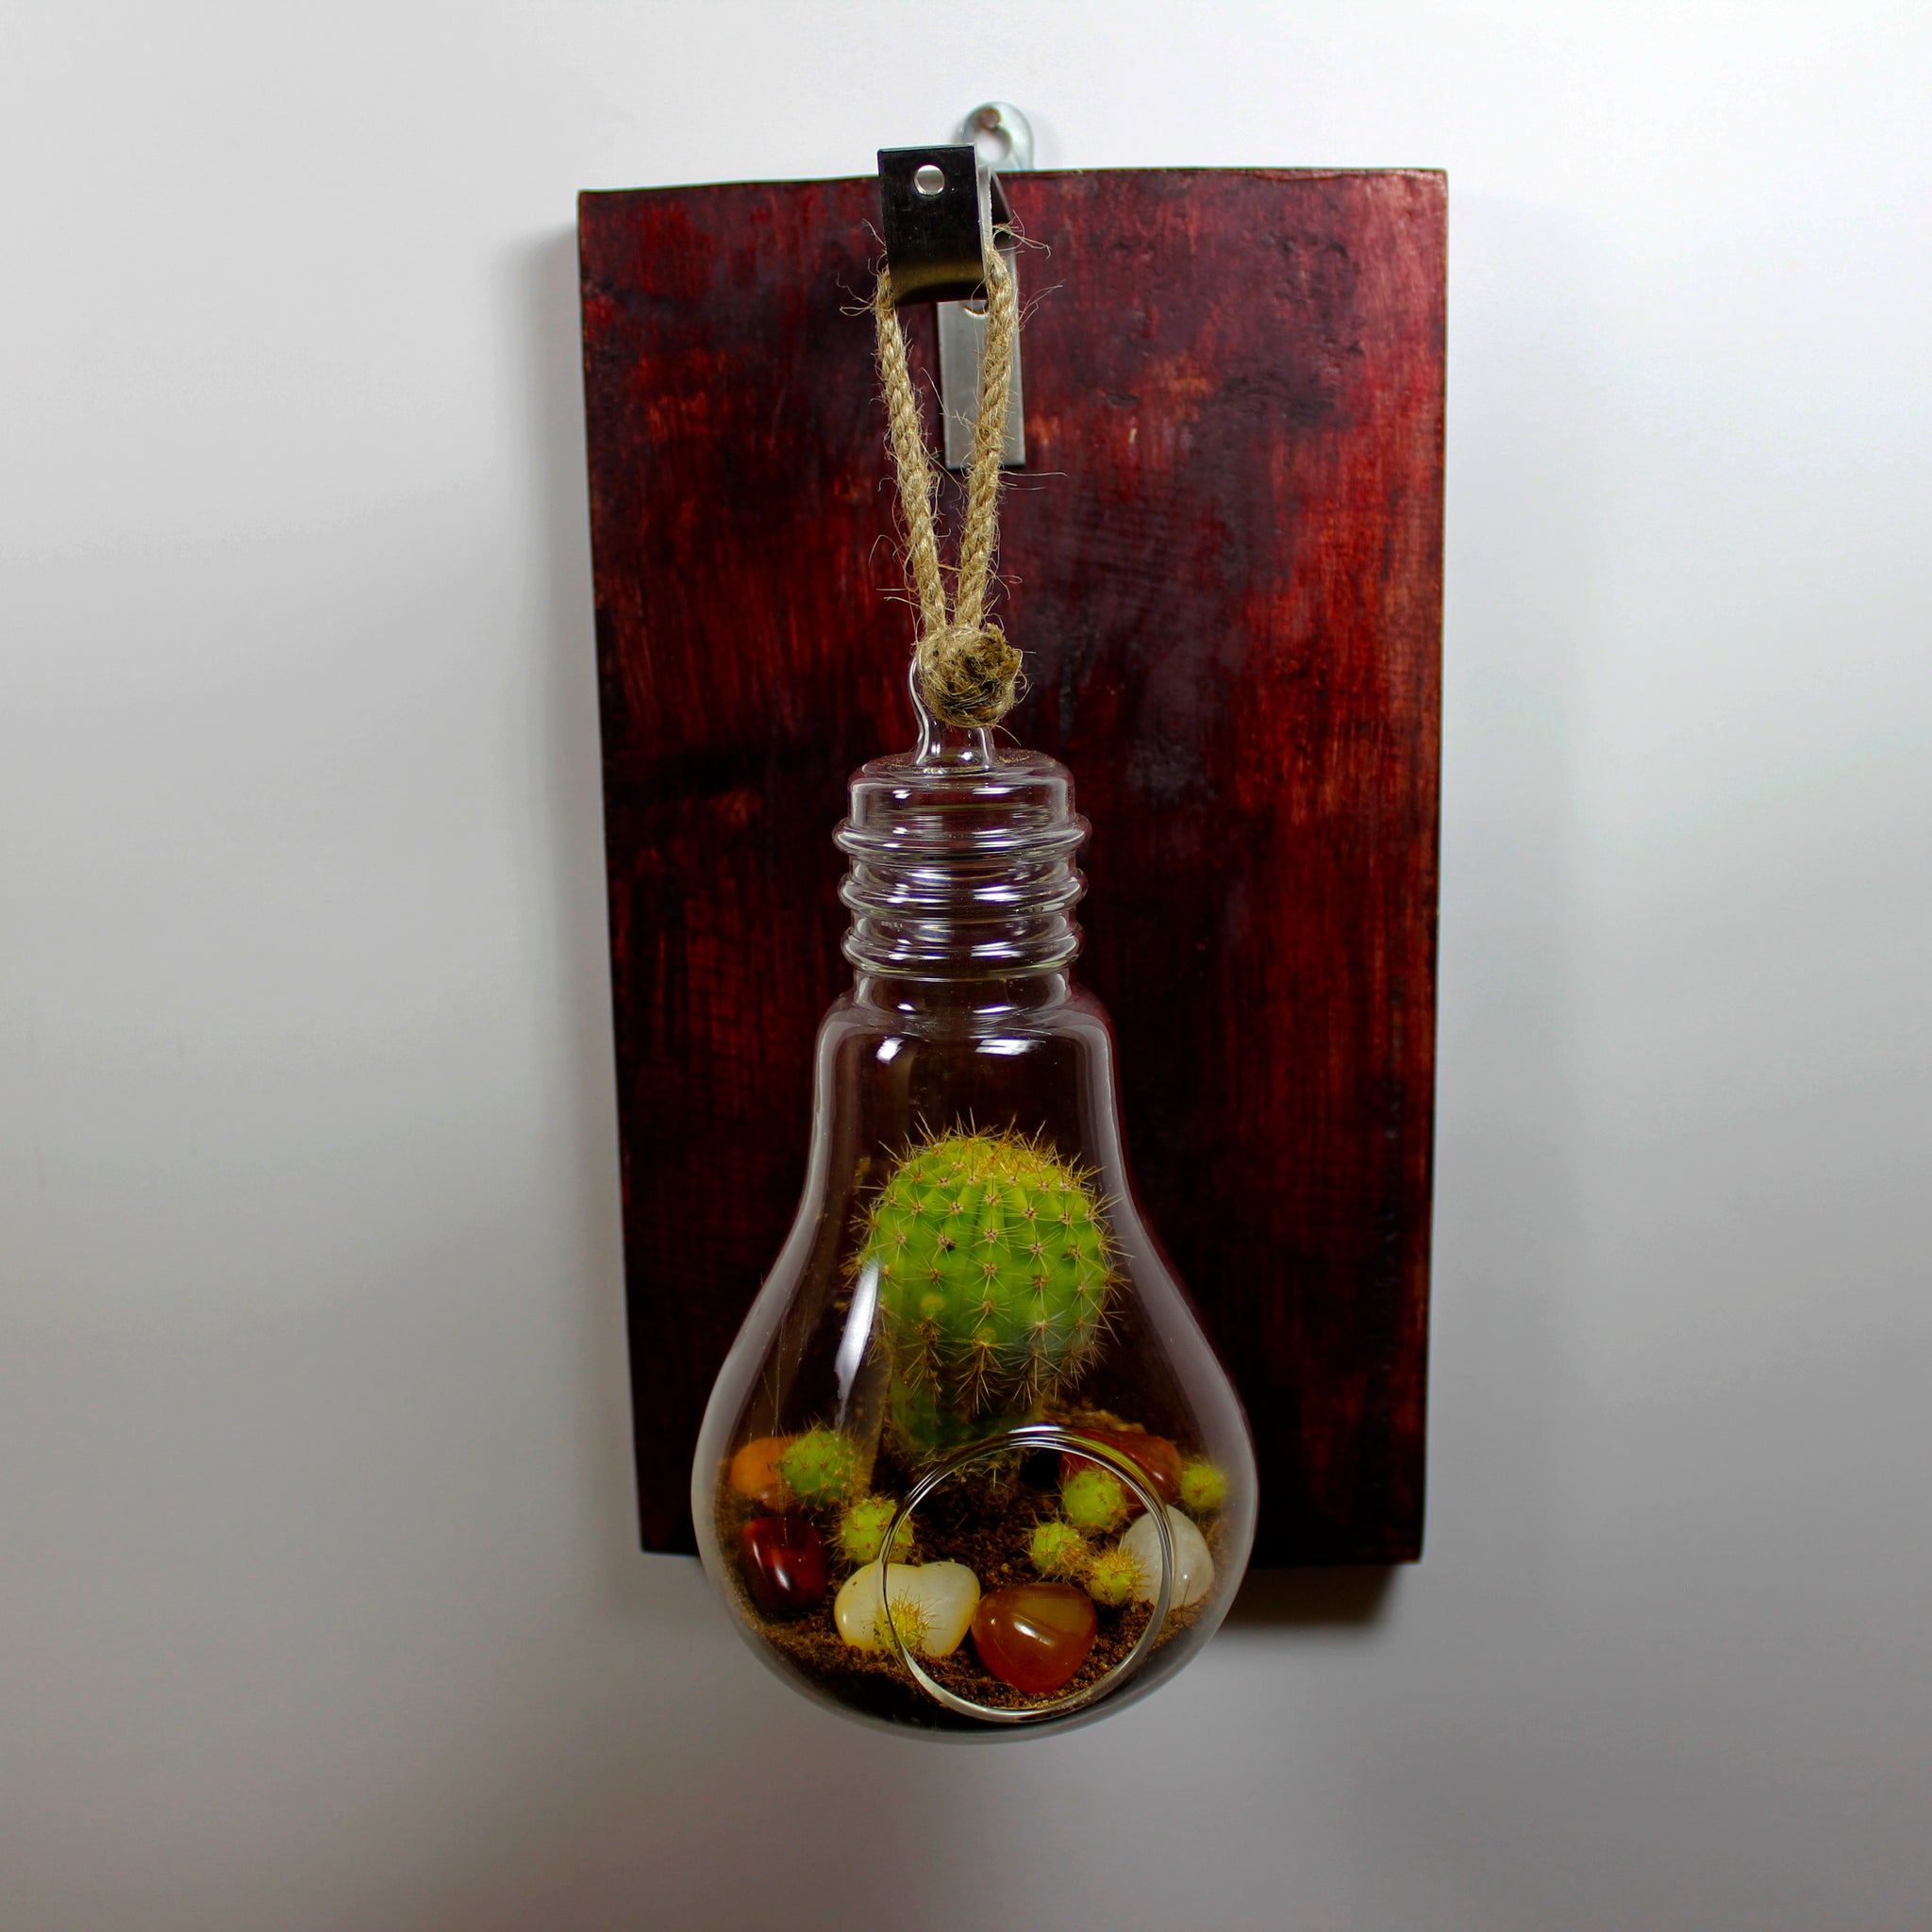 Hanging Glass Terrariums For Succulents And Air Plants With Wooden